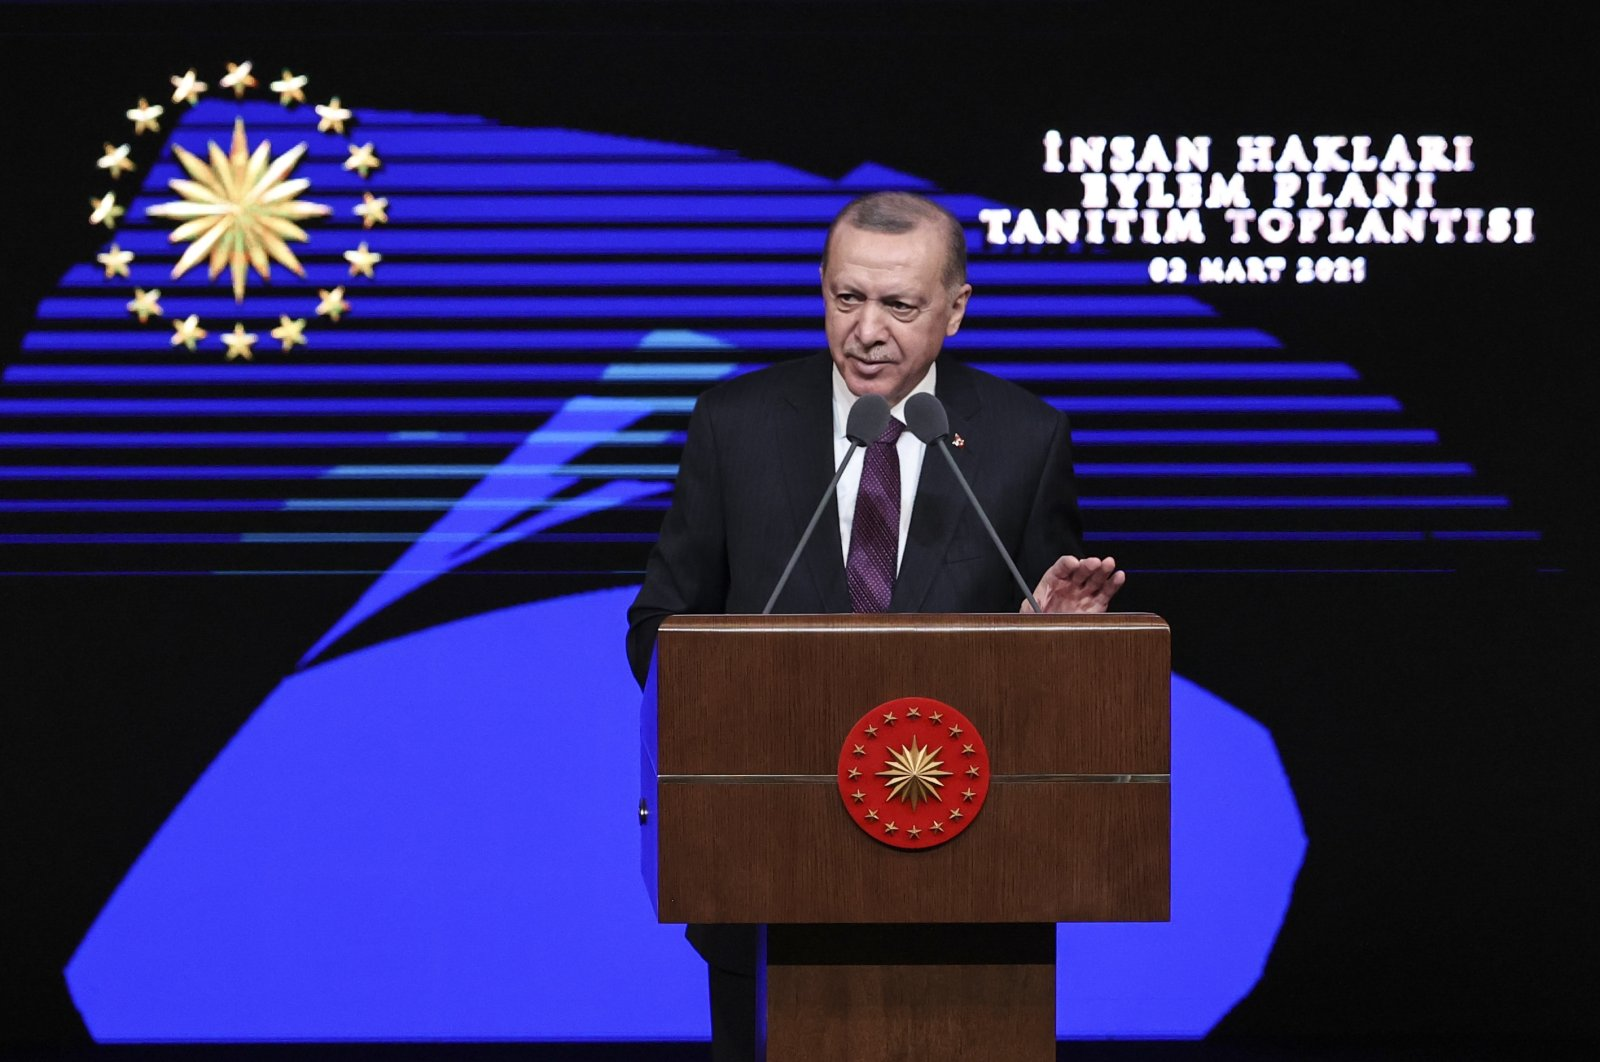 President Recep Tayyip Erdoğan announces the Human Rights Action Plan in the capital Ankara, Turkey, March 3, 2021. (AA Photo)